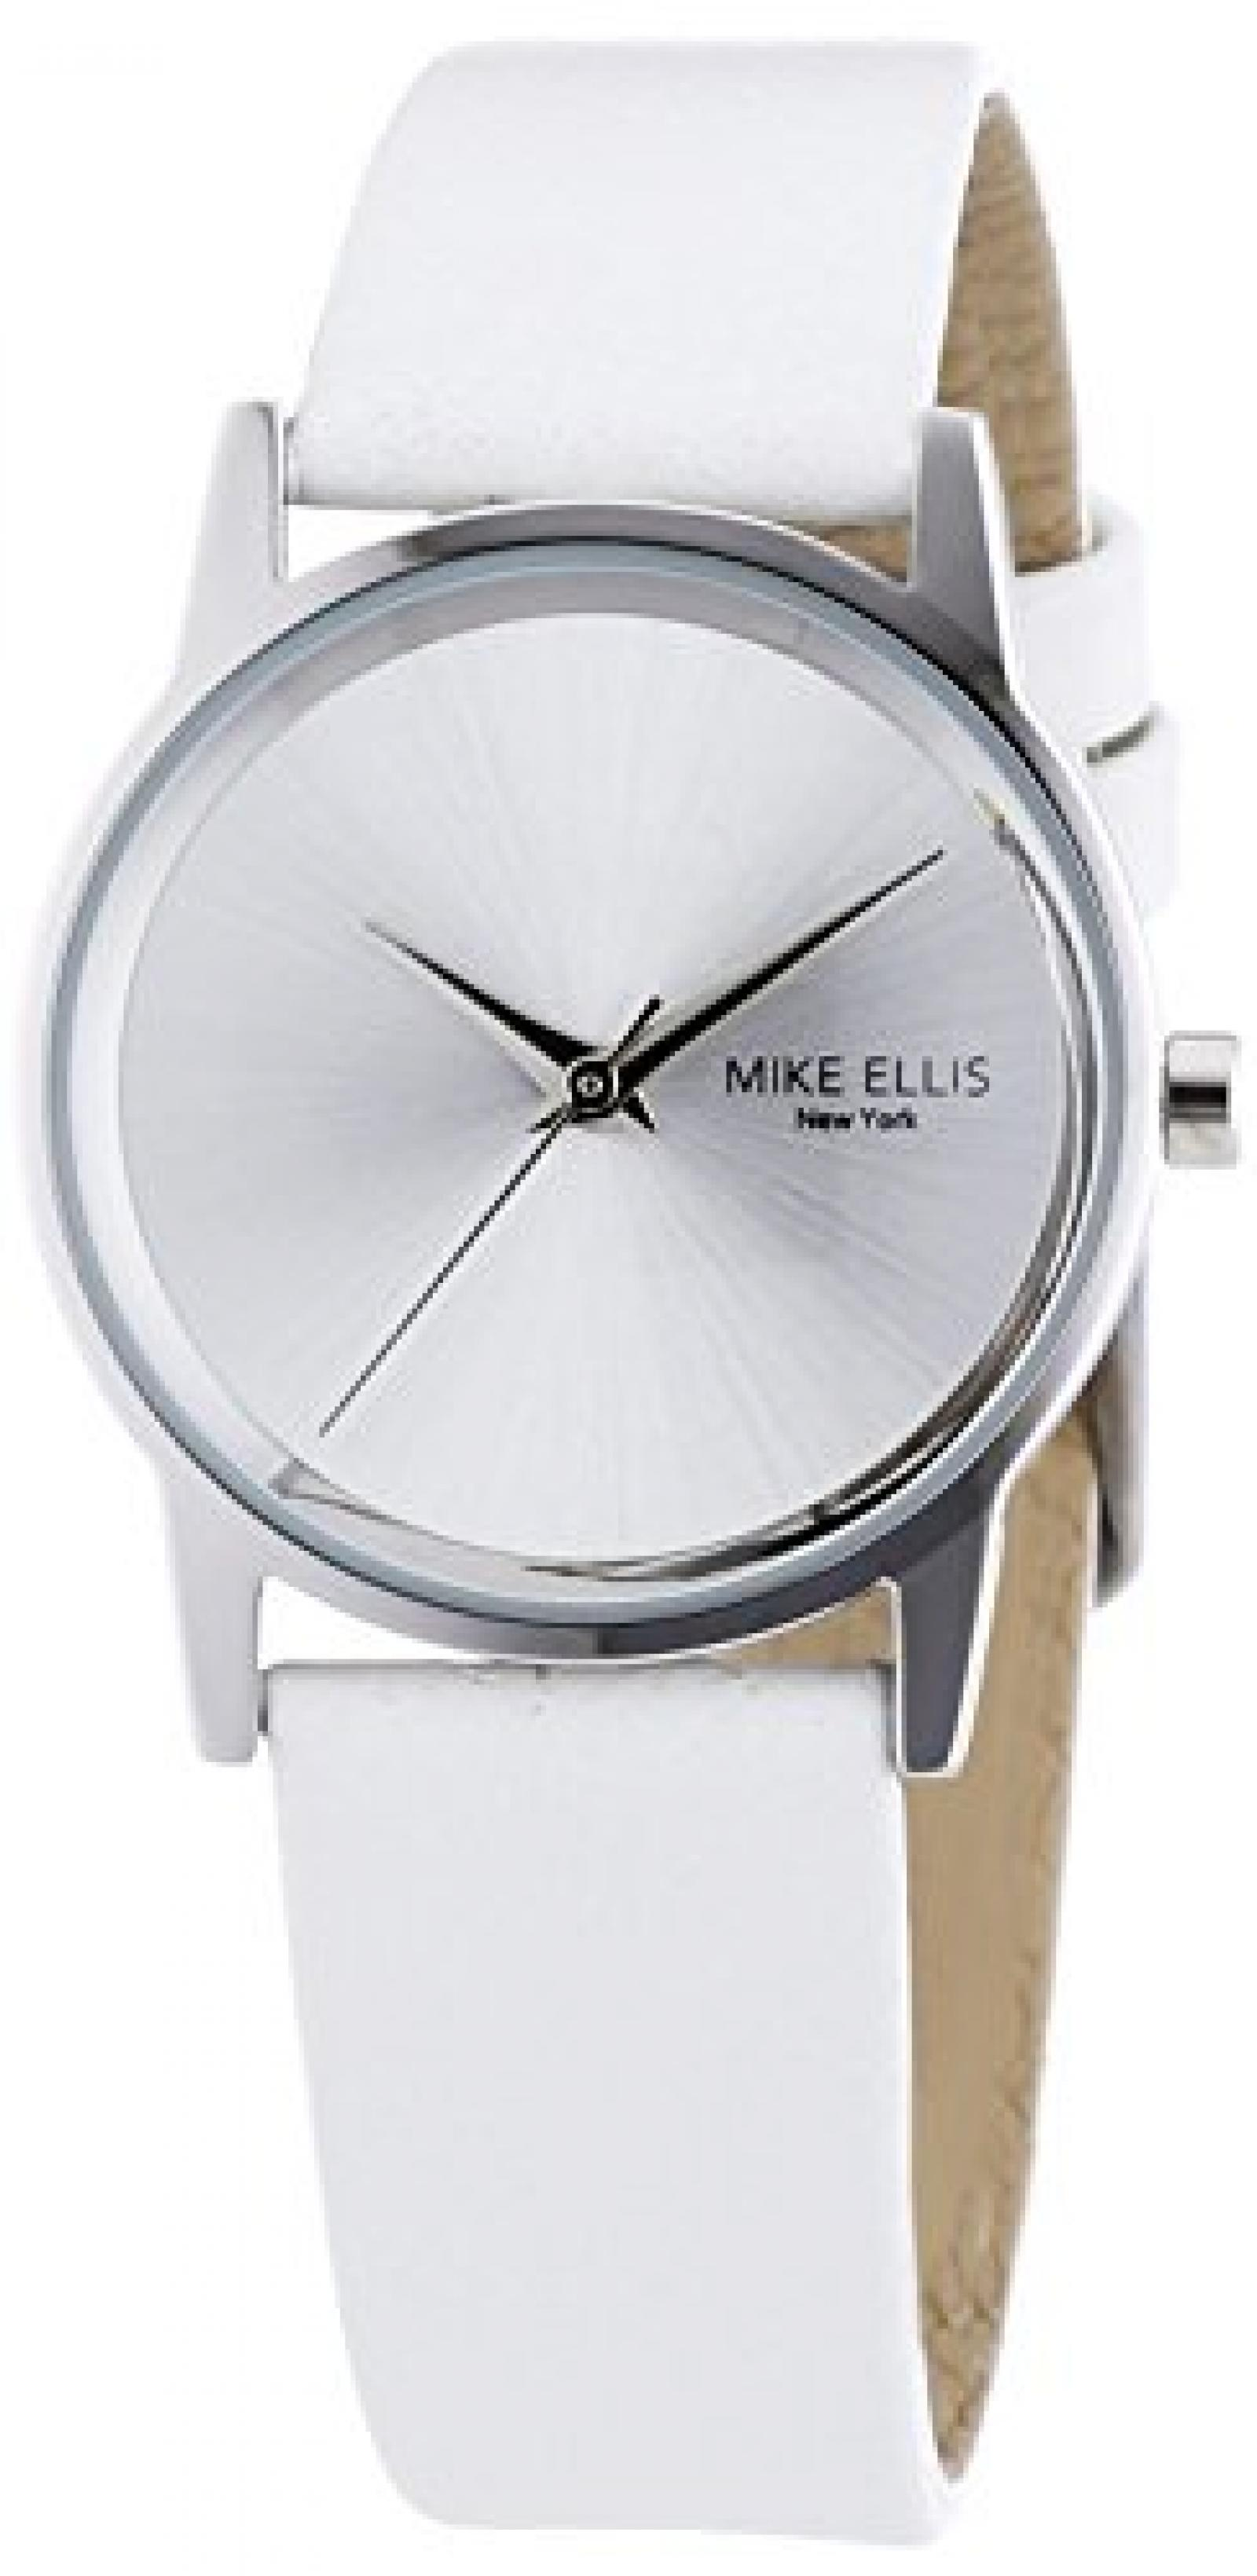 Mike Ellis New York Damen-Armbanduhr XS AW Analog Quarz Leder SL4-60230C